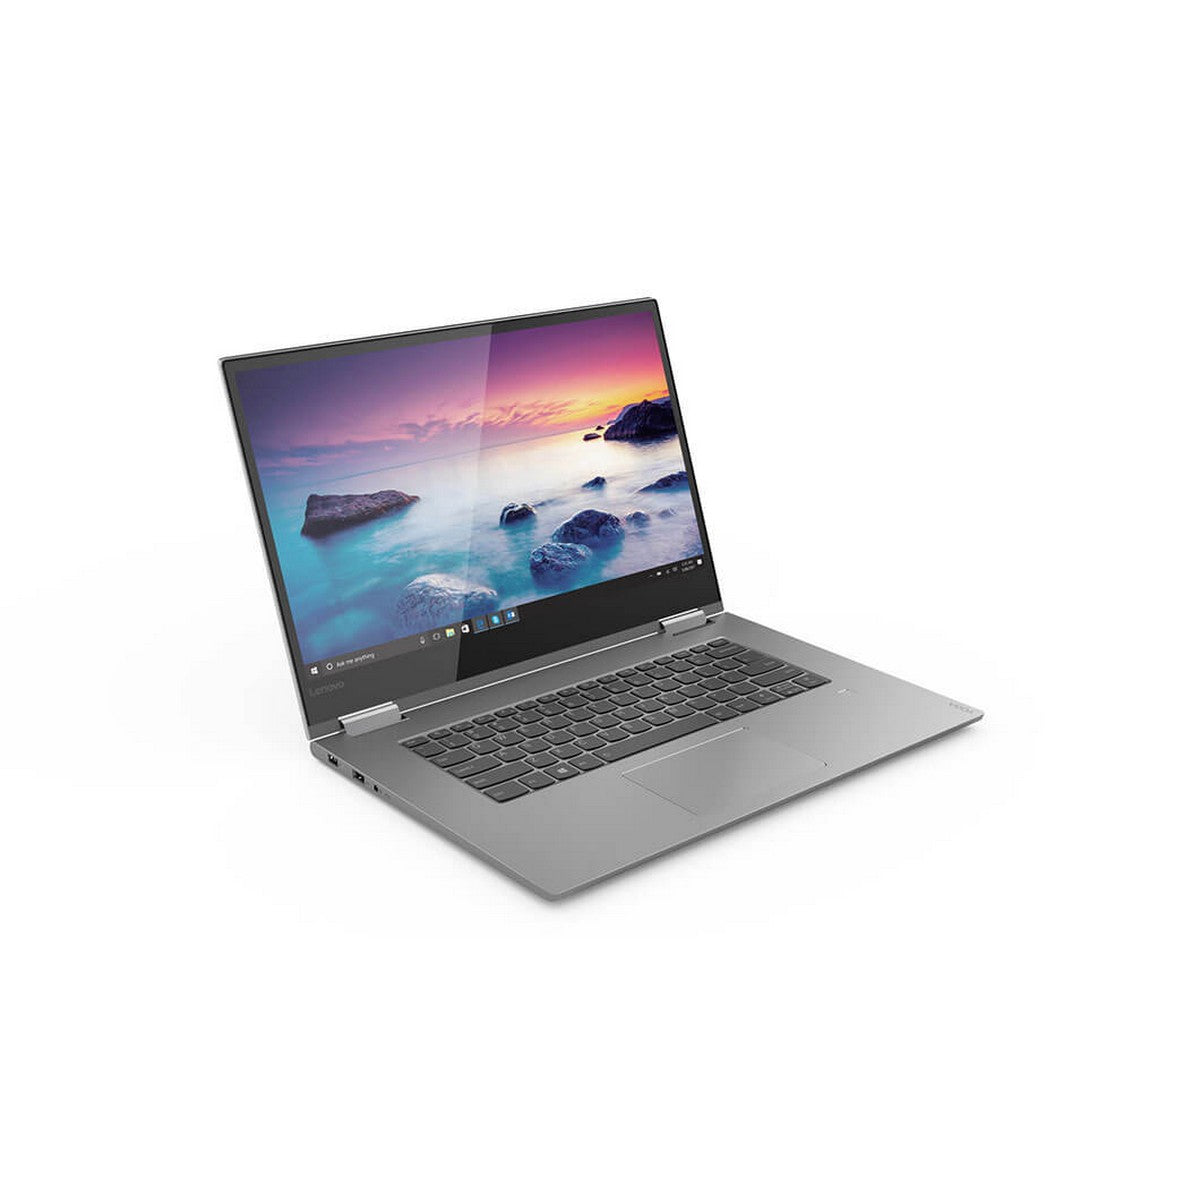 Lenovo Yoga 730-15IKB 2 in 1 Laptop 15.6'' FHD IPS , Intel Core i7 i7-8550U 1.80GHz 8M Cache up to 4.0GHz, 16GB RAM, GTX 1050 4GB GPU, 512GB SSD, Touchscreen, Windows 10, English Keyboard, Platinum